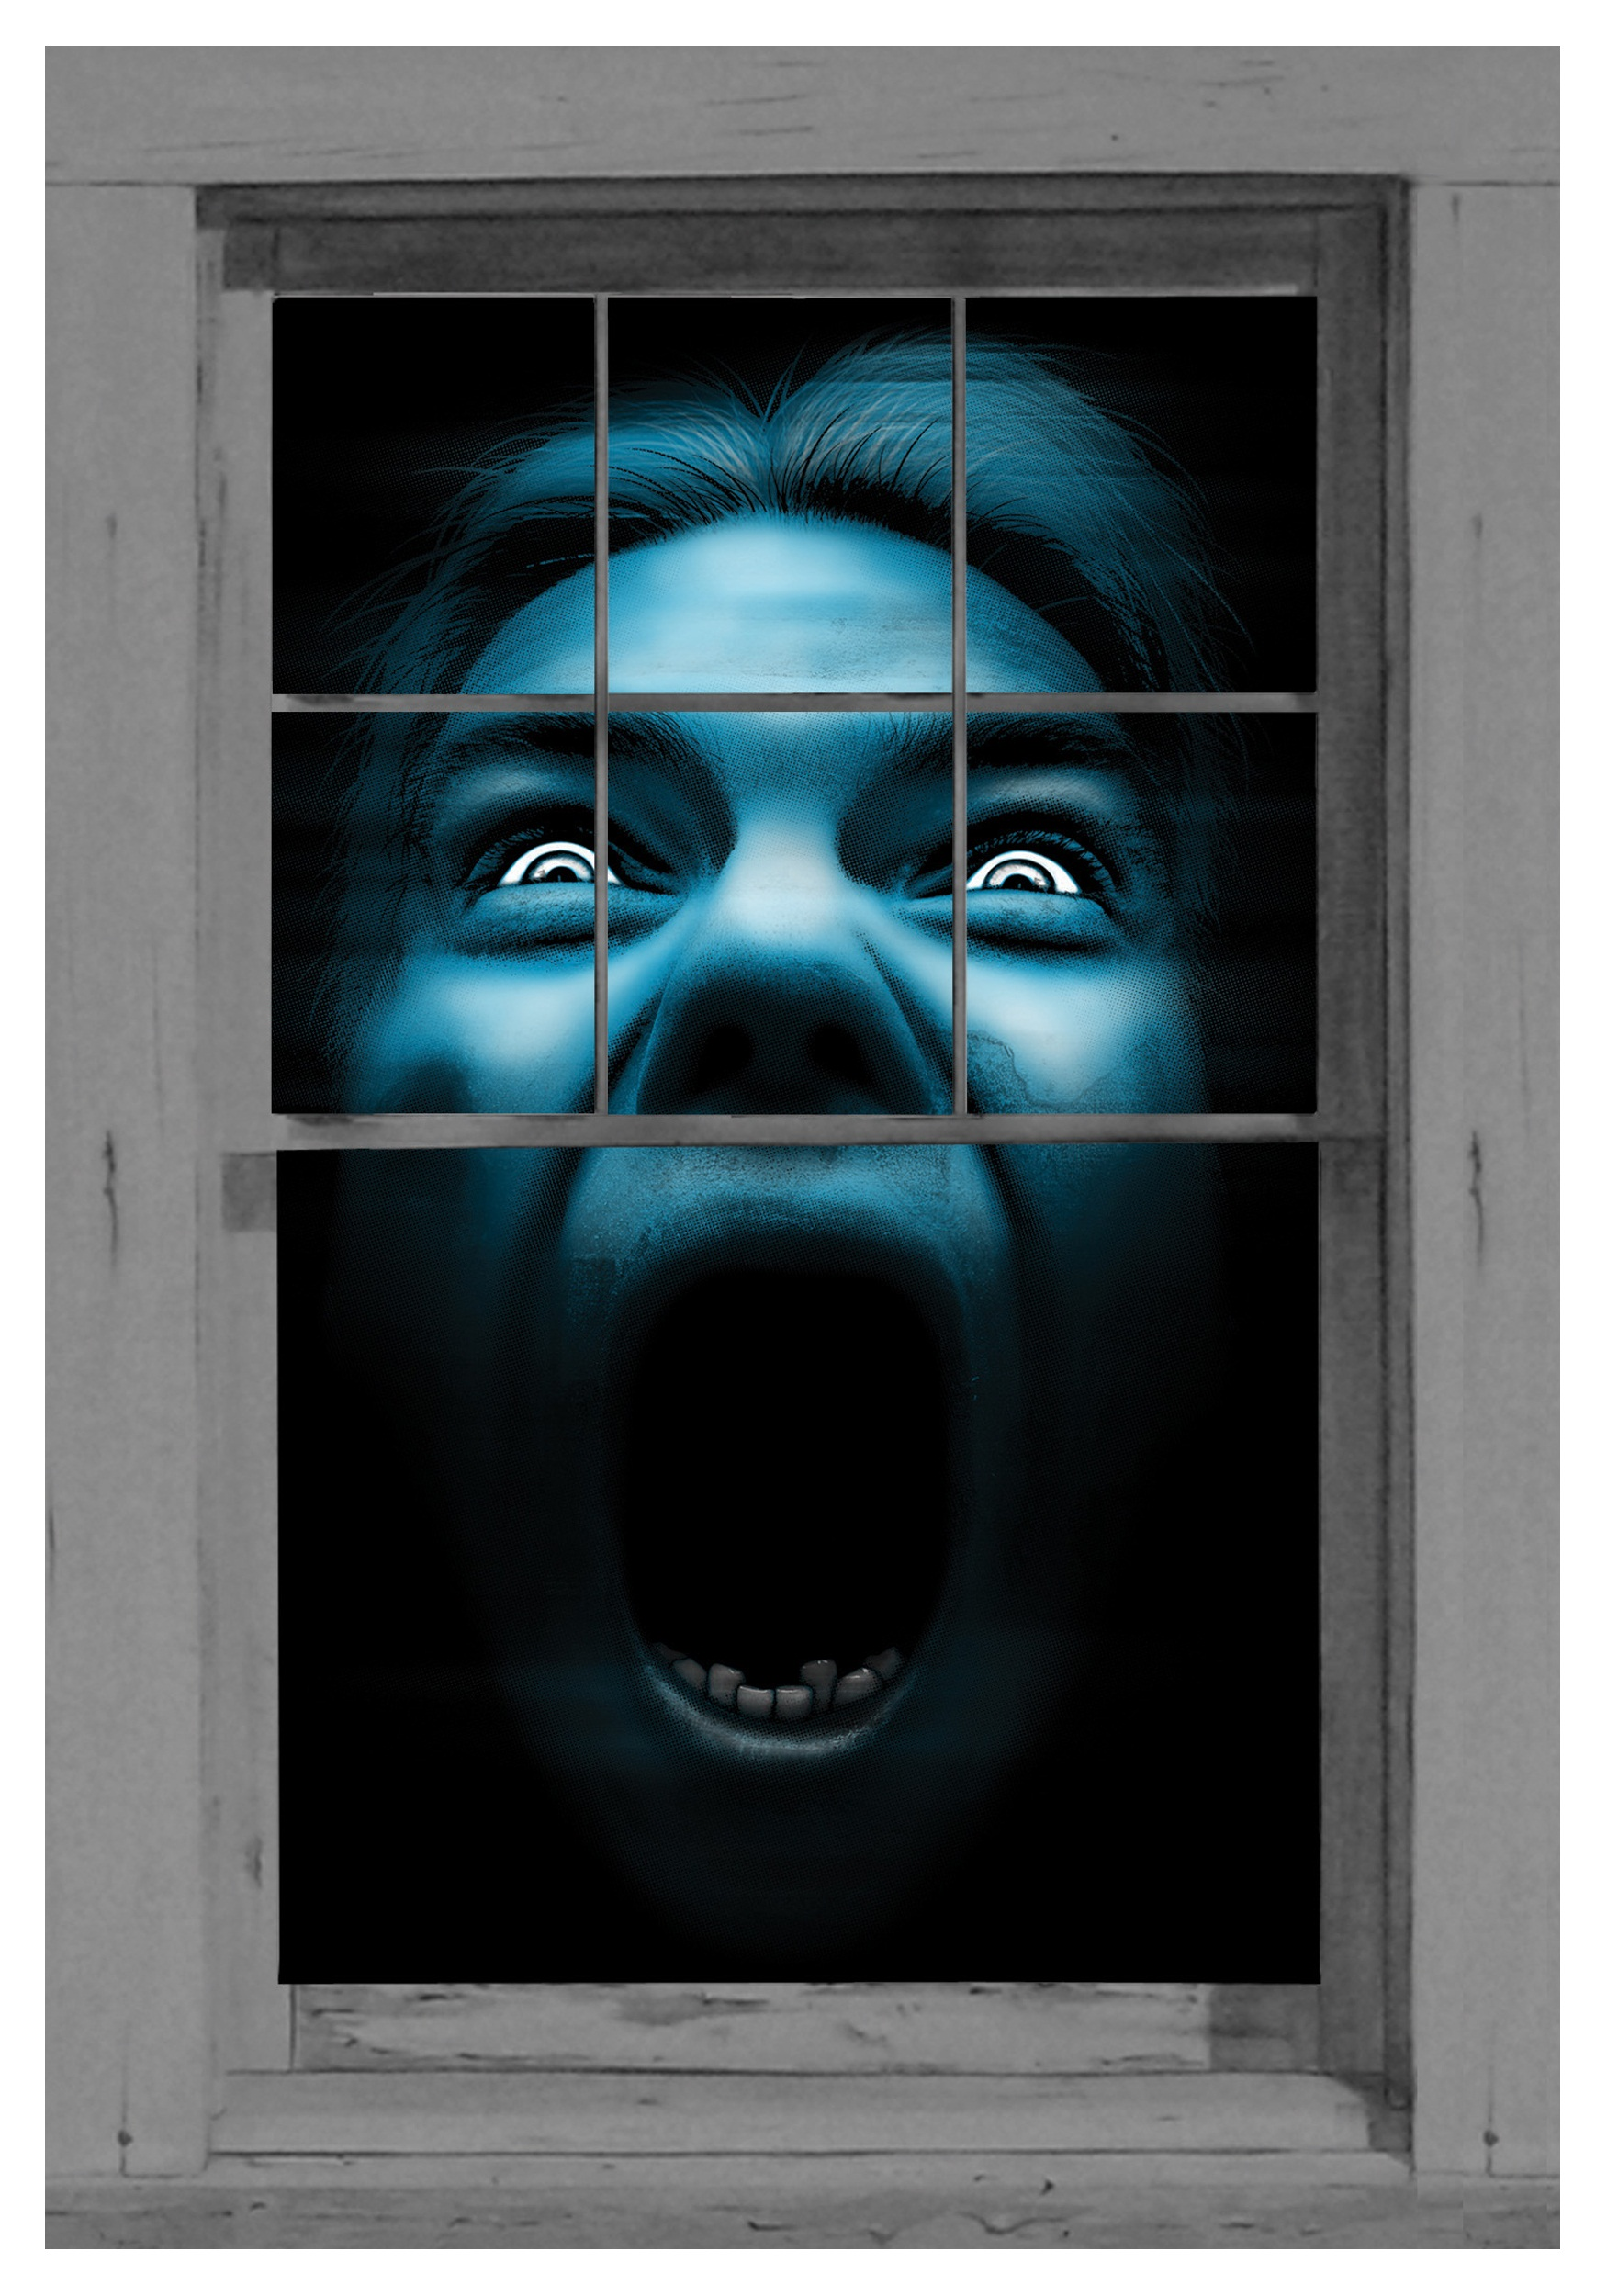 silent shrieker window cling - Halloween Window Clings